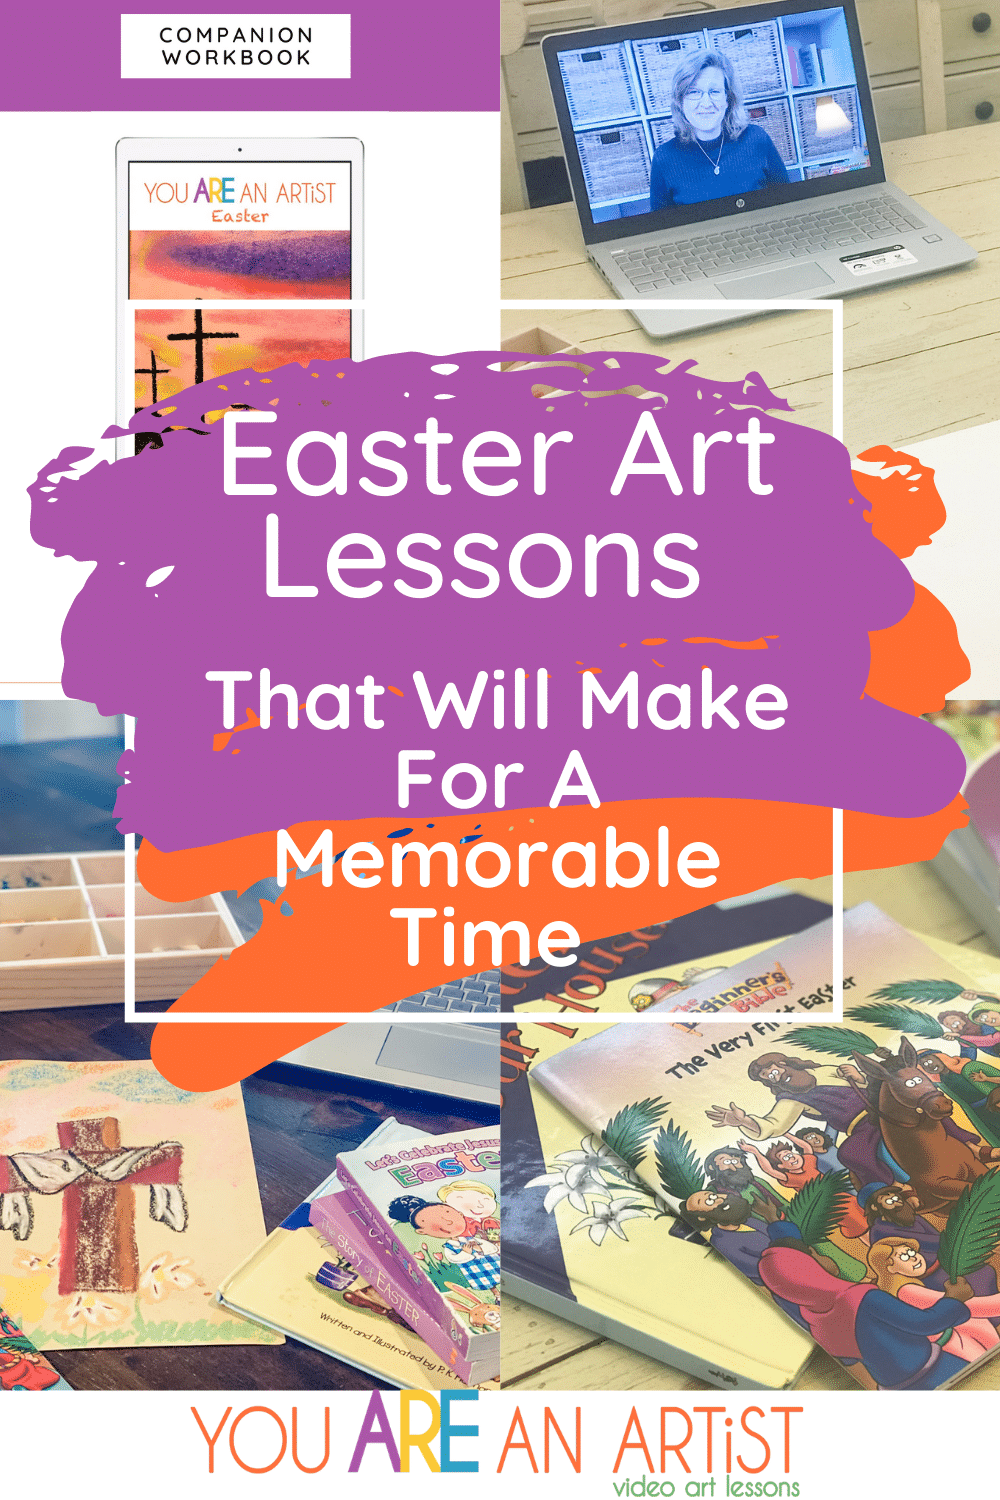 Easter Art Lessons That Will Make For A Memorable Time